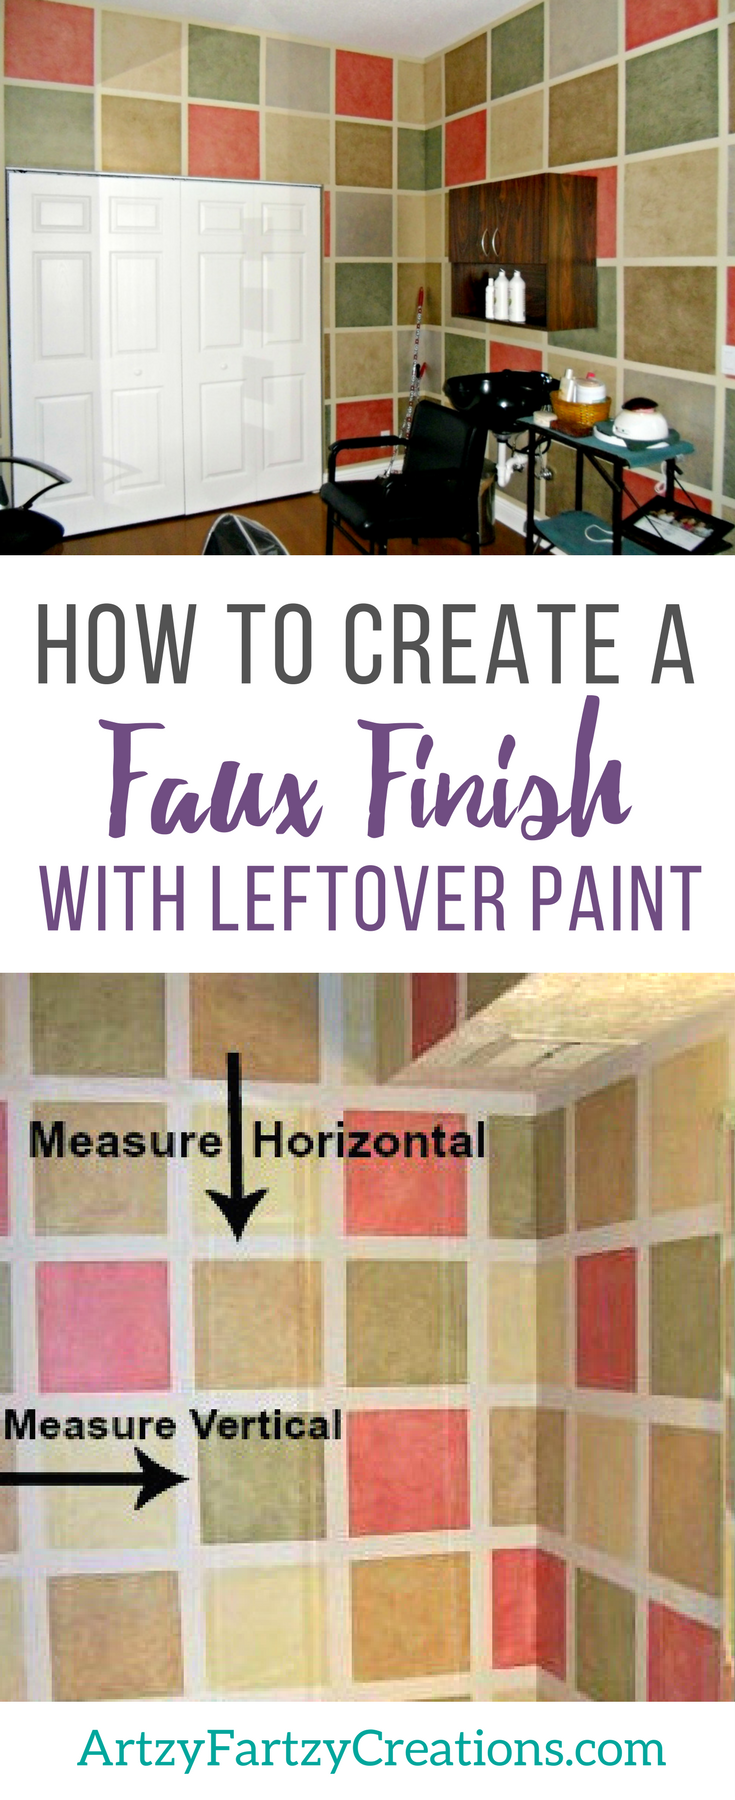 How to Faux Finish with Leftover Paint | Budget-friendly Decorating Ideas by Cheryl Phan | Accent Wall | Feature Wall | Rag Off Faux Finish